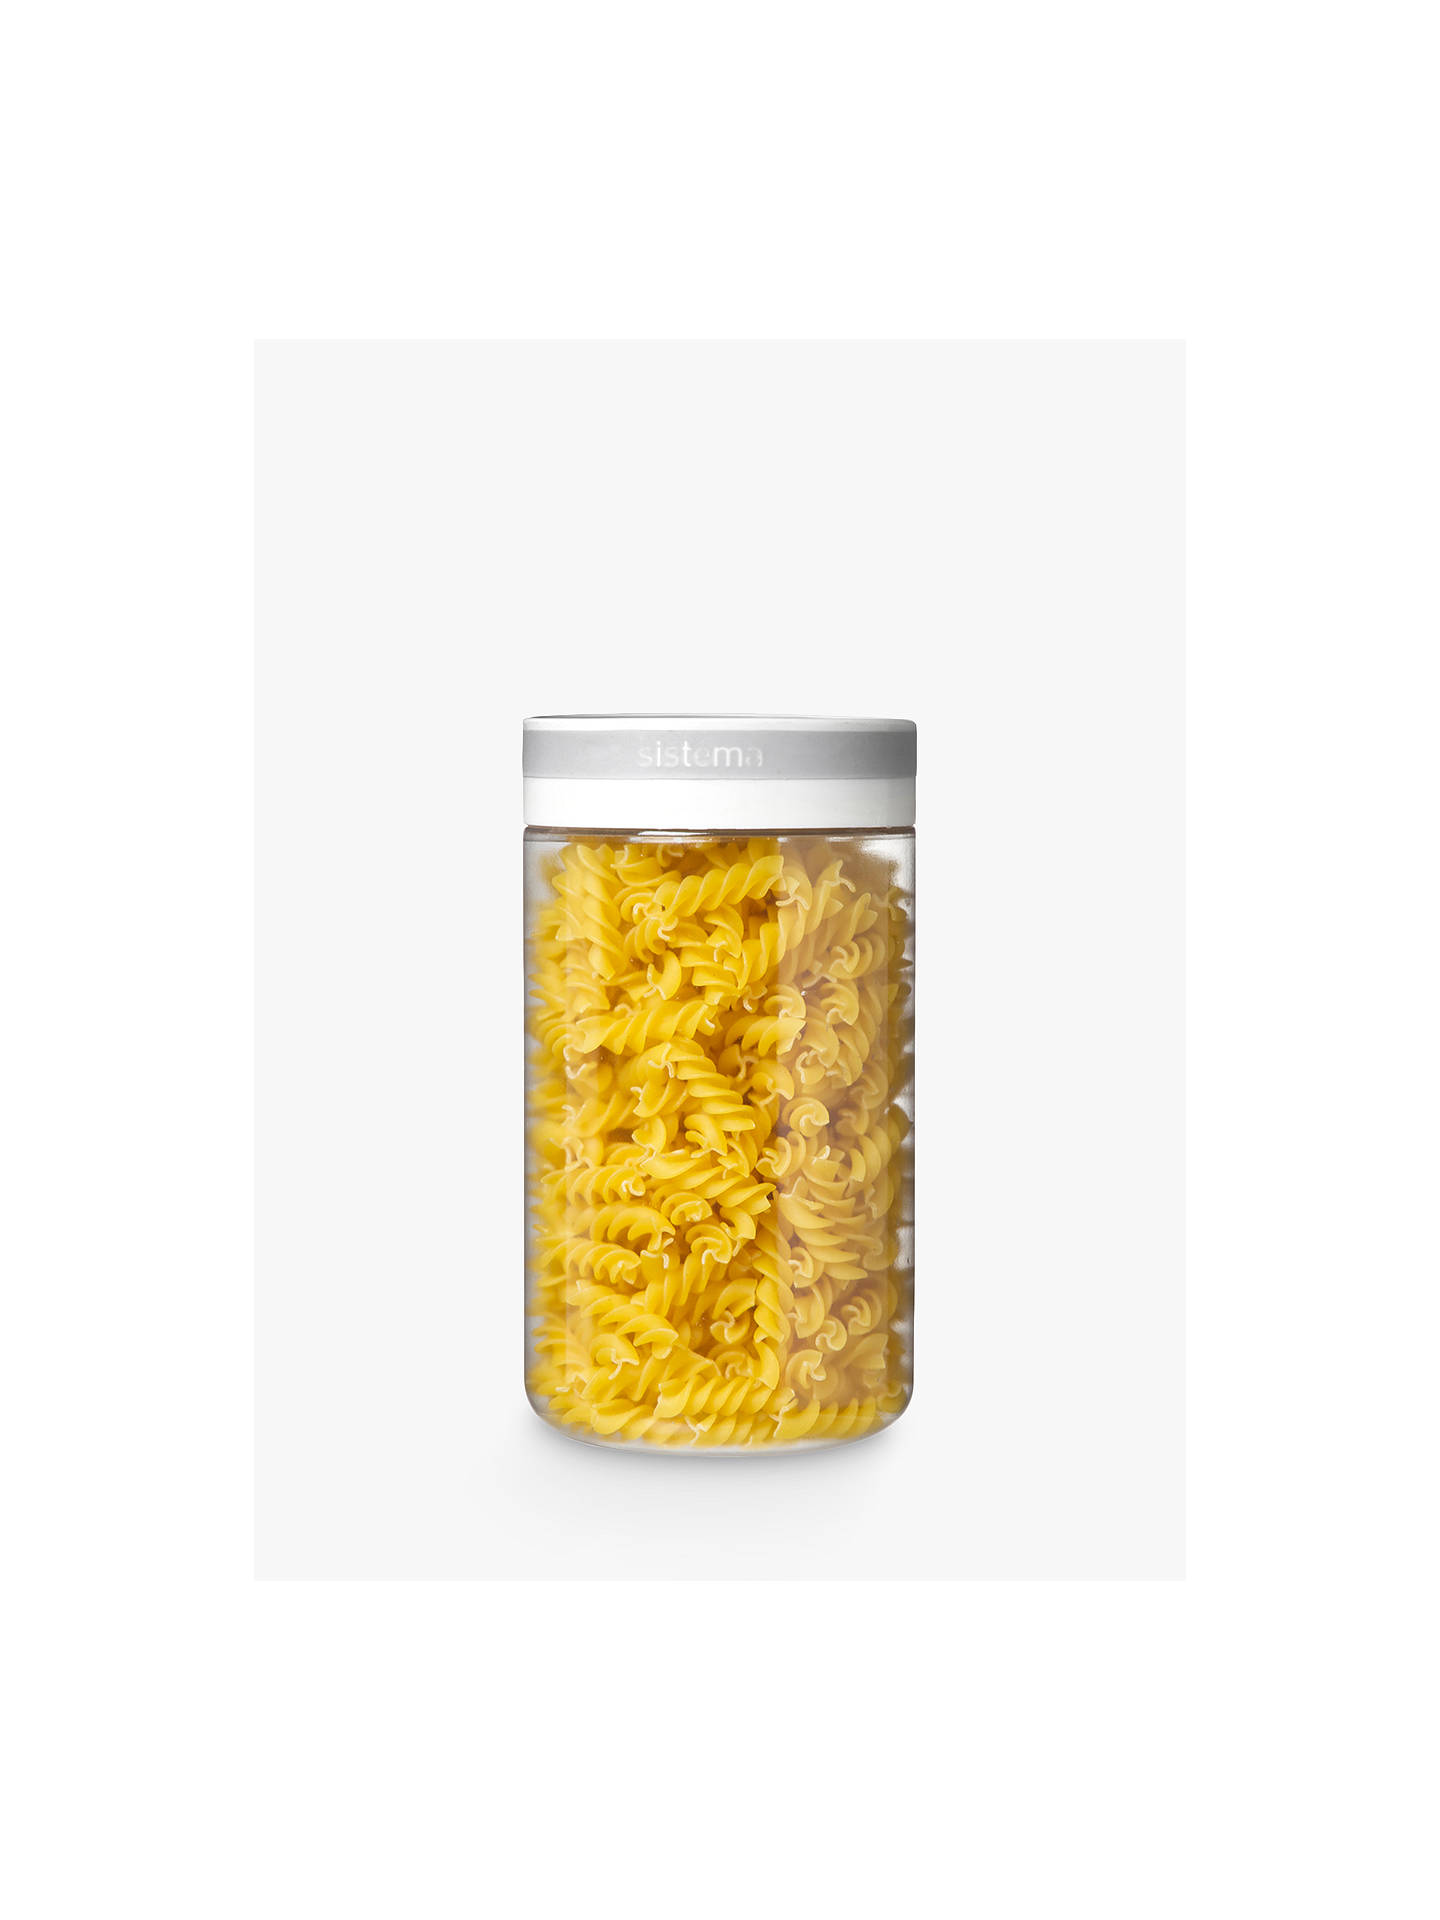 BuySistema Tritan Storage Canister, 1.2L Online at johnlewis.com